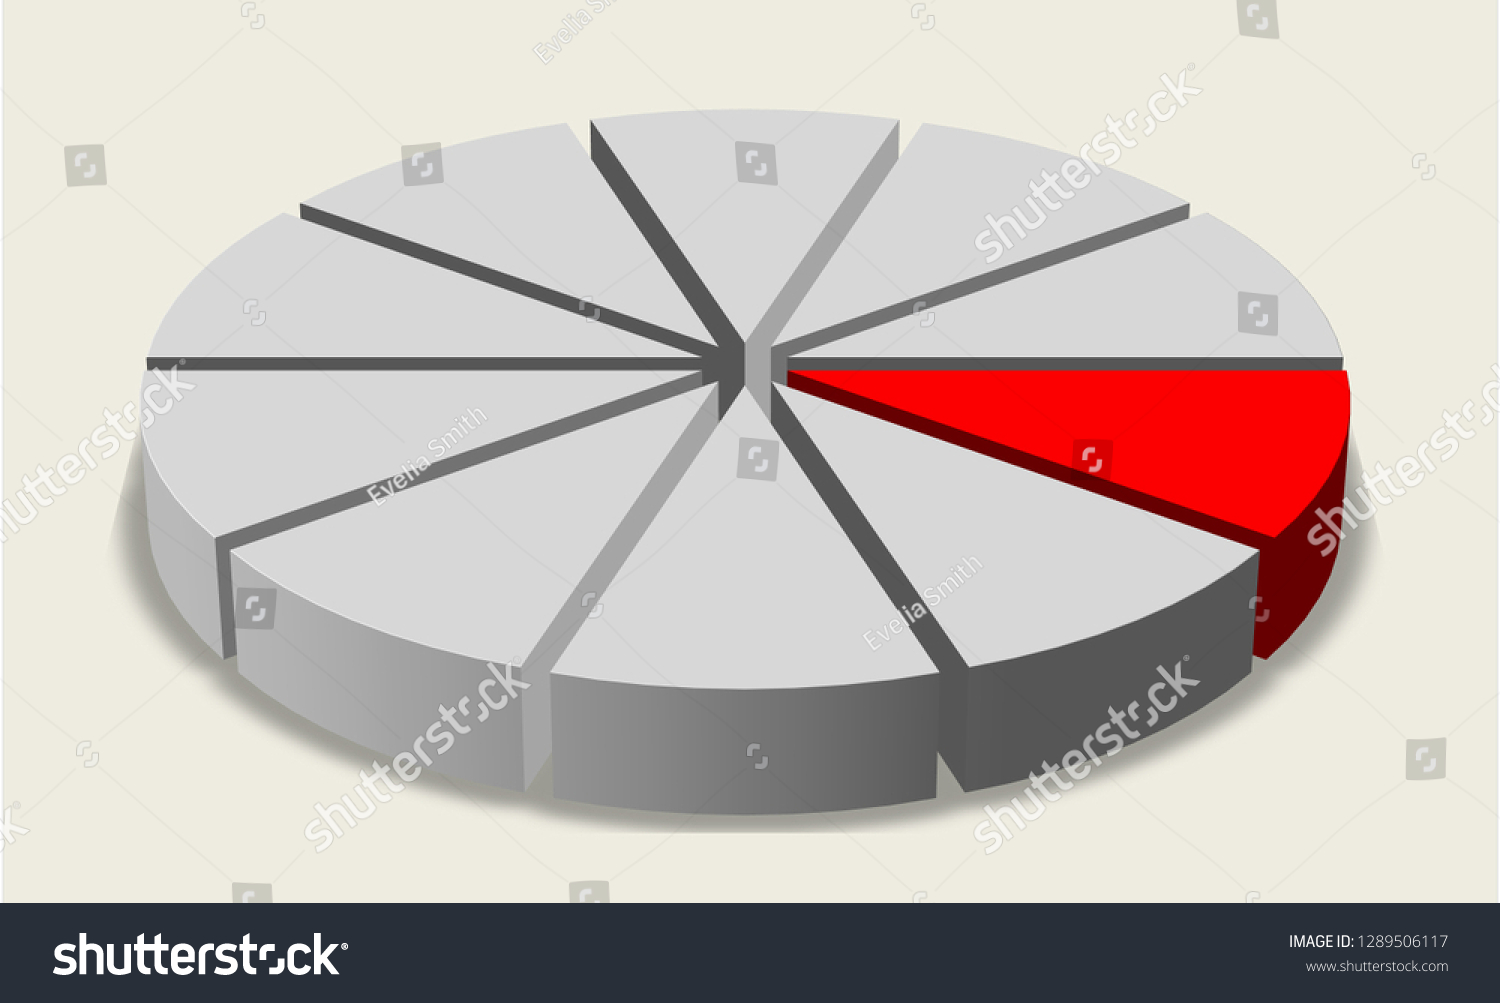 hight resolution of red pie chart a tenth